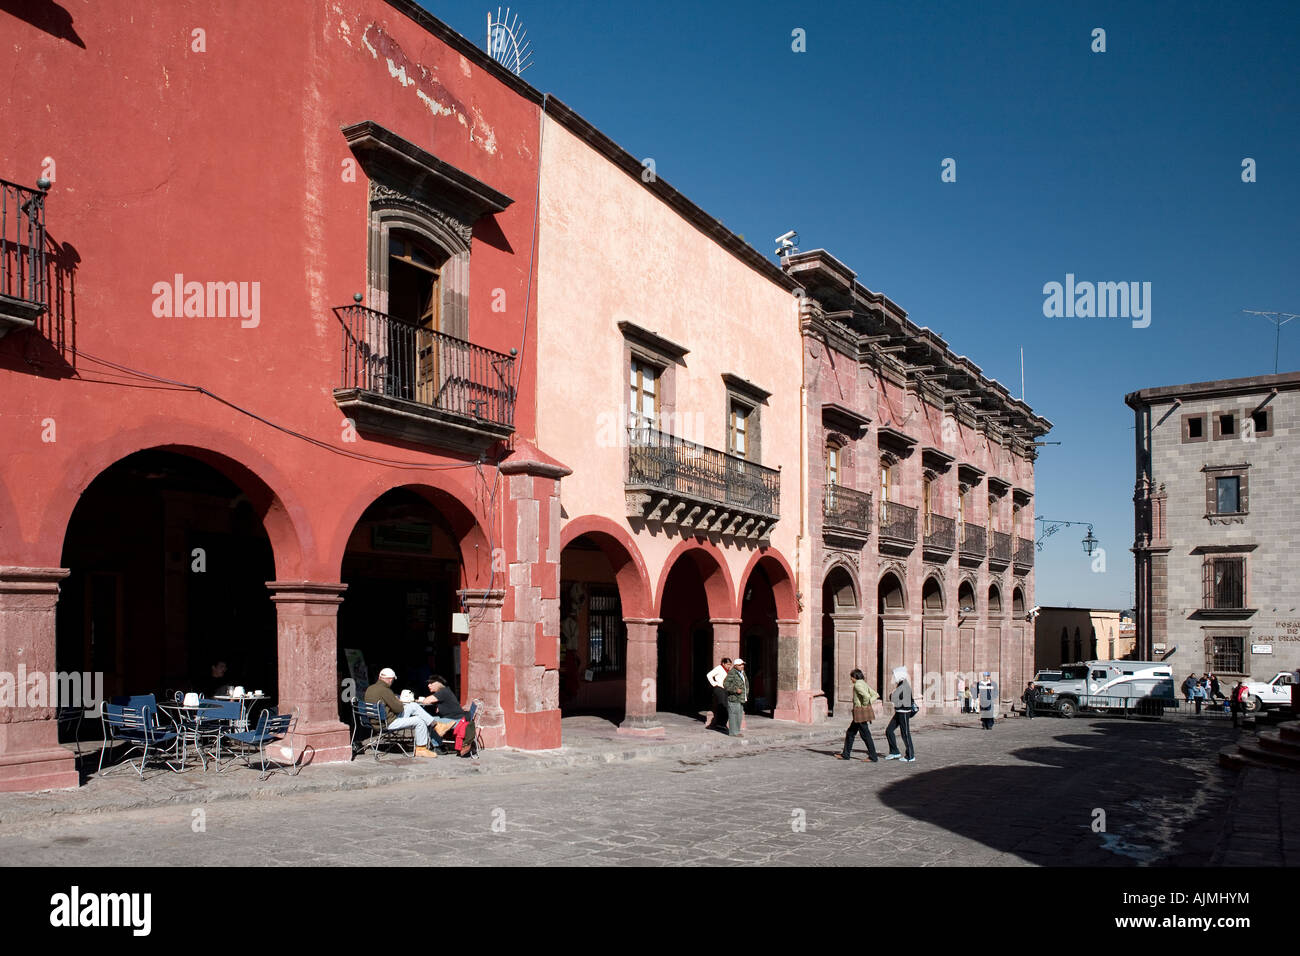 Cafes and shops surrounding Jardin Principal the main square of San Miguel de Allende Mexico - Stock Image